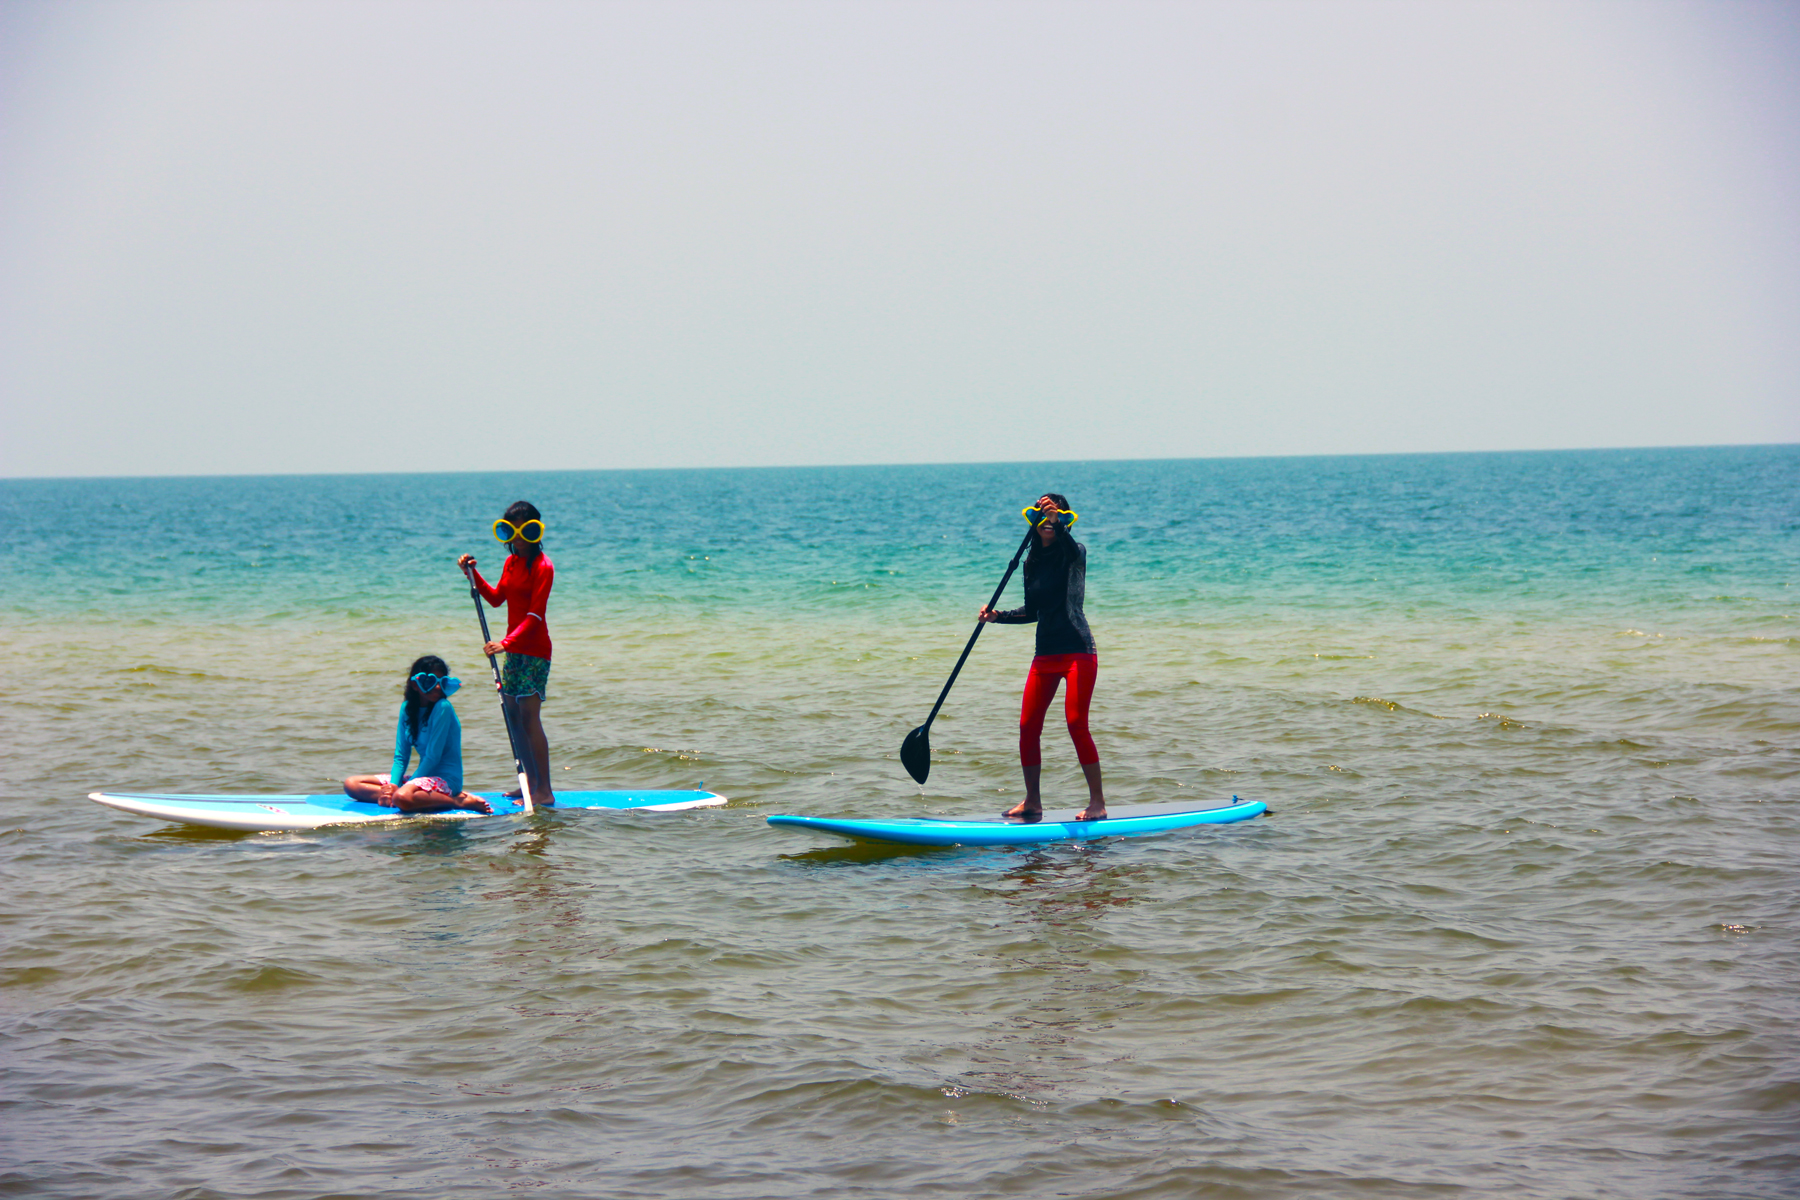 Paddle board (SUP) weekend get-away from Bangalore